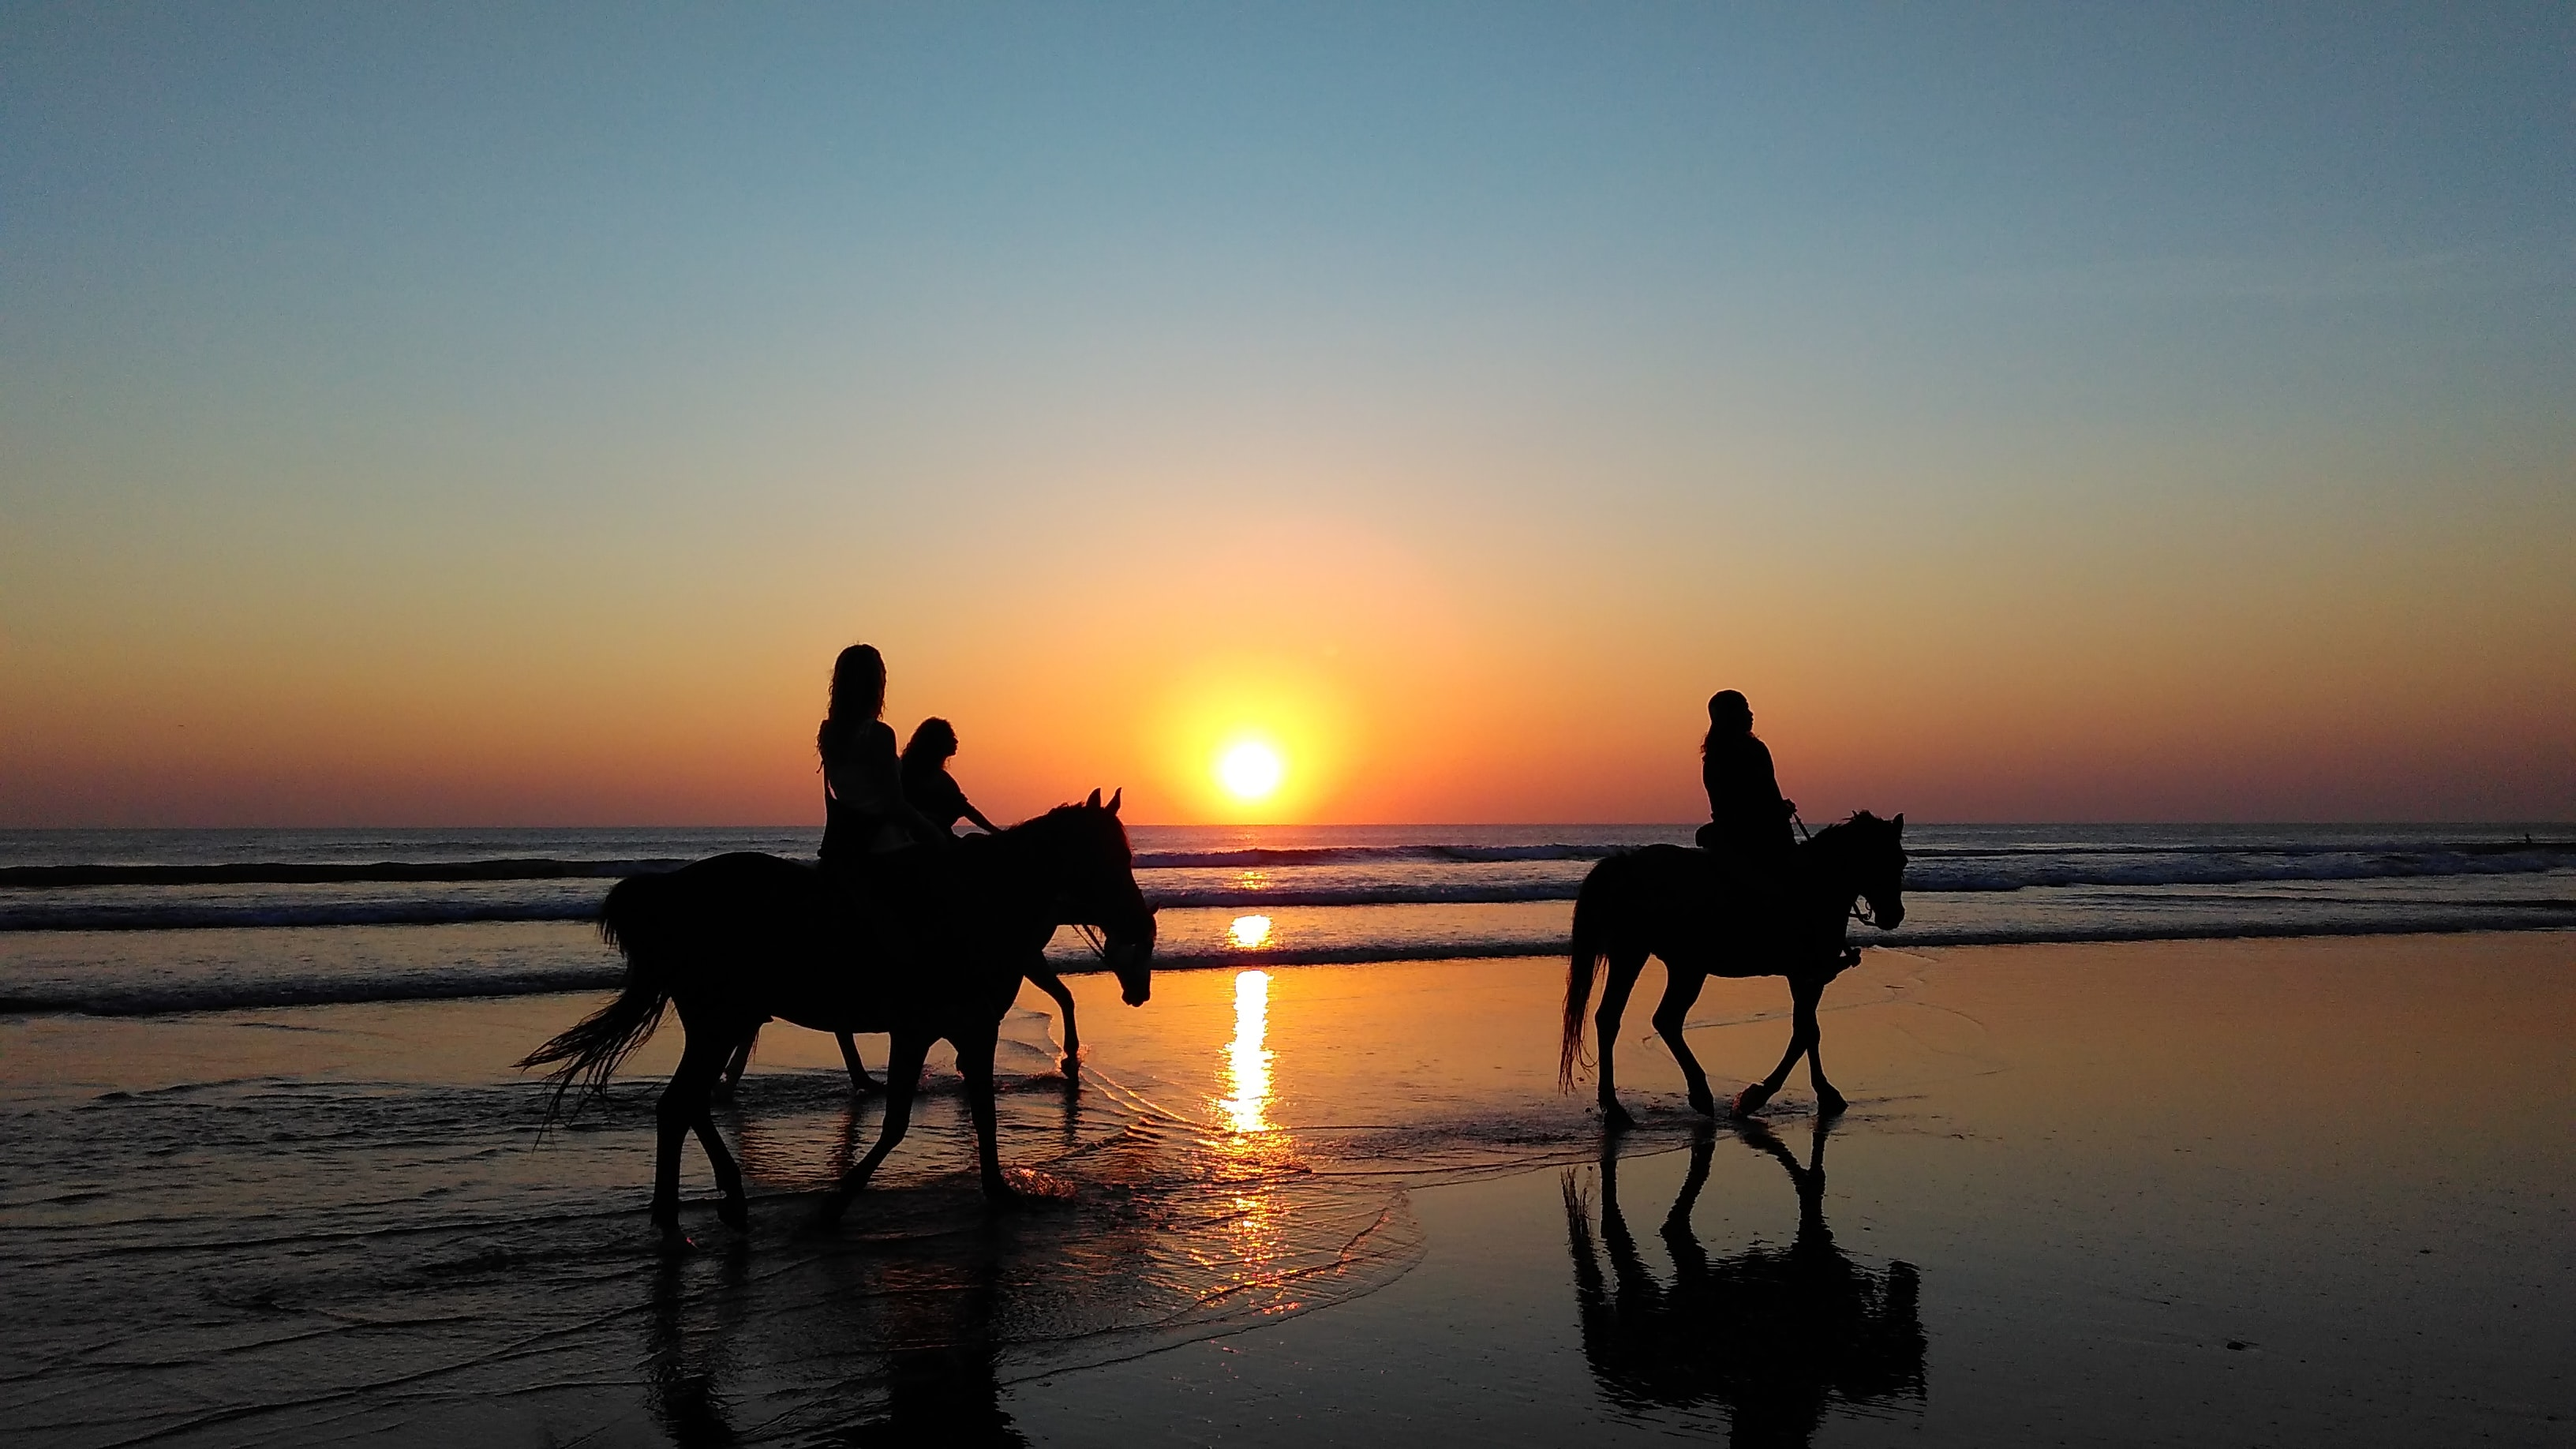 Silhouettes of people riding horses through shallow water on a beach during sunset